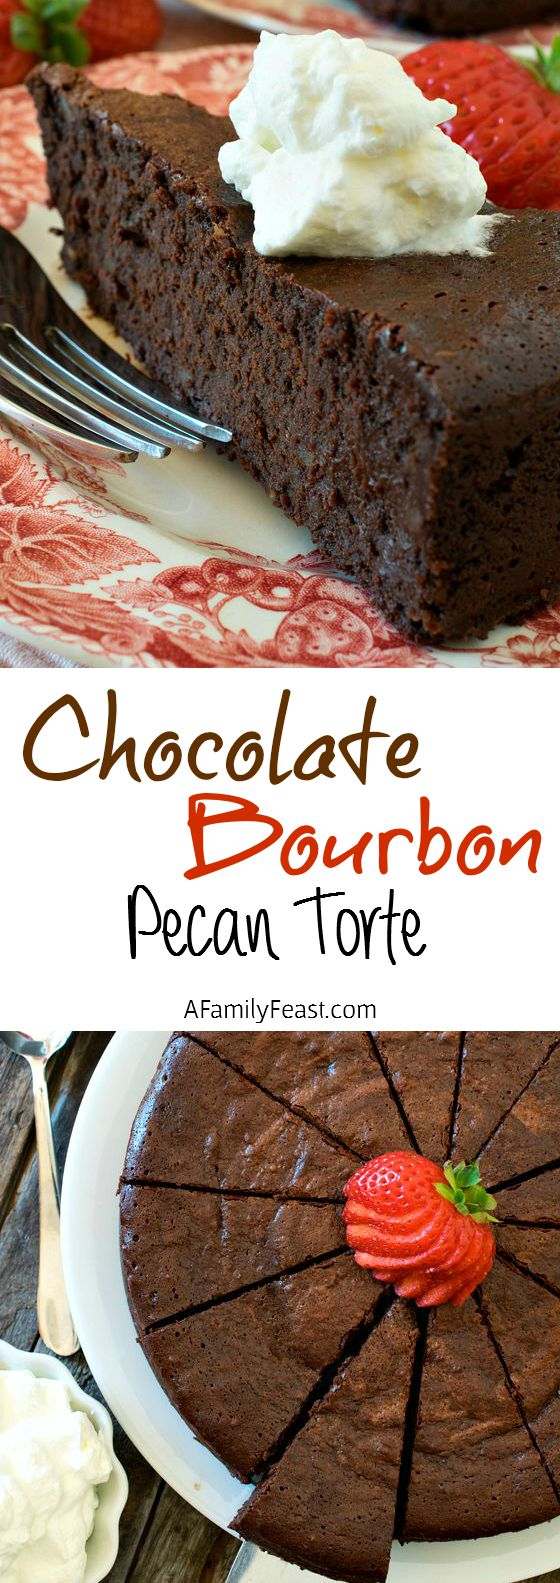 Chocolate-Bourbon Pecan Torte - A decadent, rich flourless chocolate cake made even more decadent with bourbon added! Crazy rich and delicious!